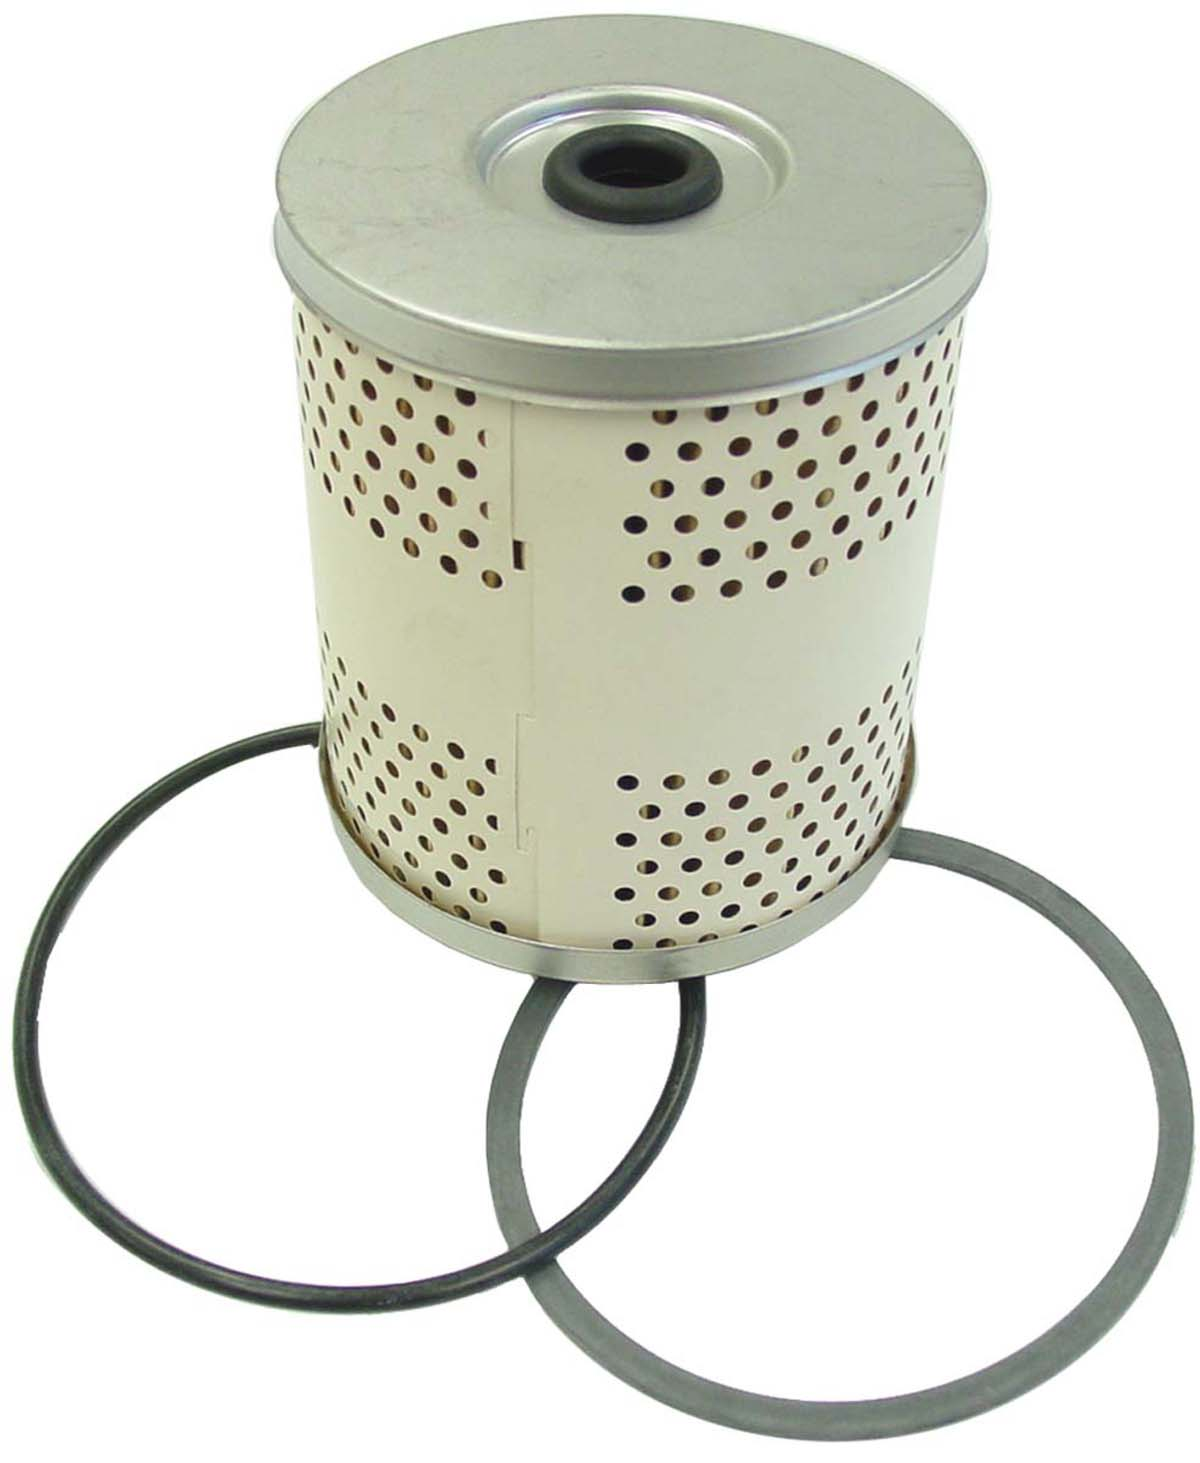 8n ford fuel filter ford fuel filter replacement #8